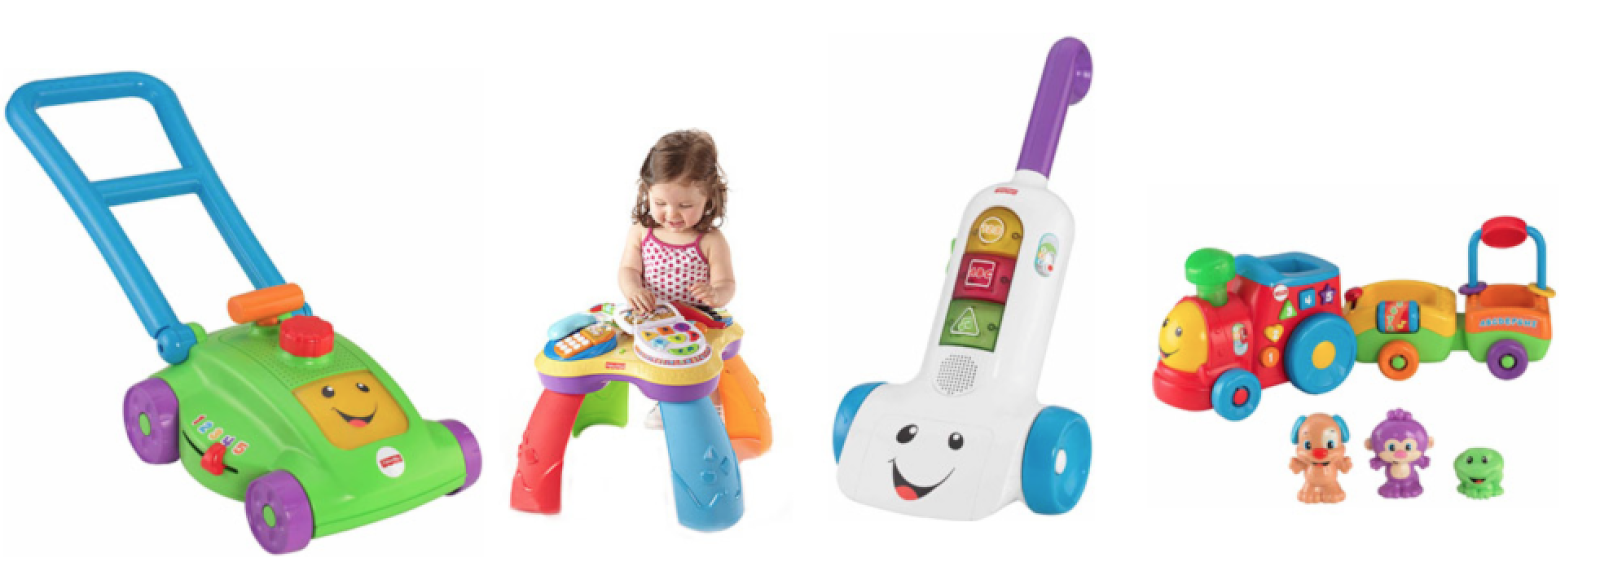 http://www.thebinderladies.com/2014/09/laugh-learn-great-roll-back-toy-deals.html#.VBpEIUvdtbw